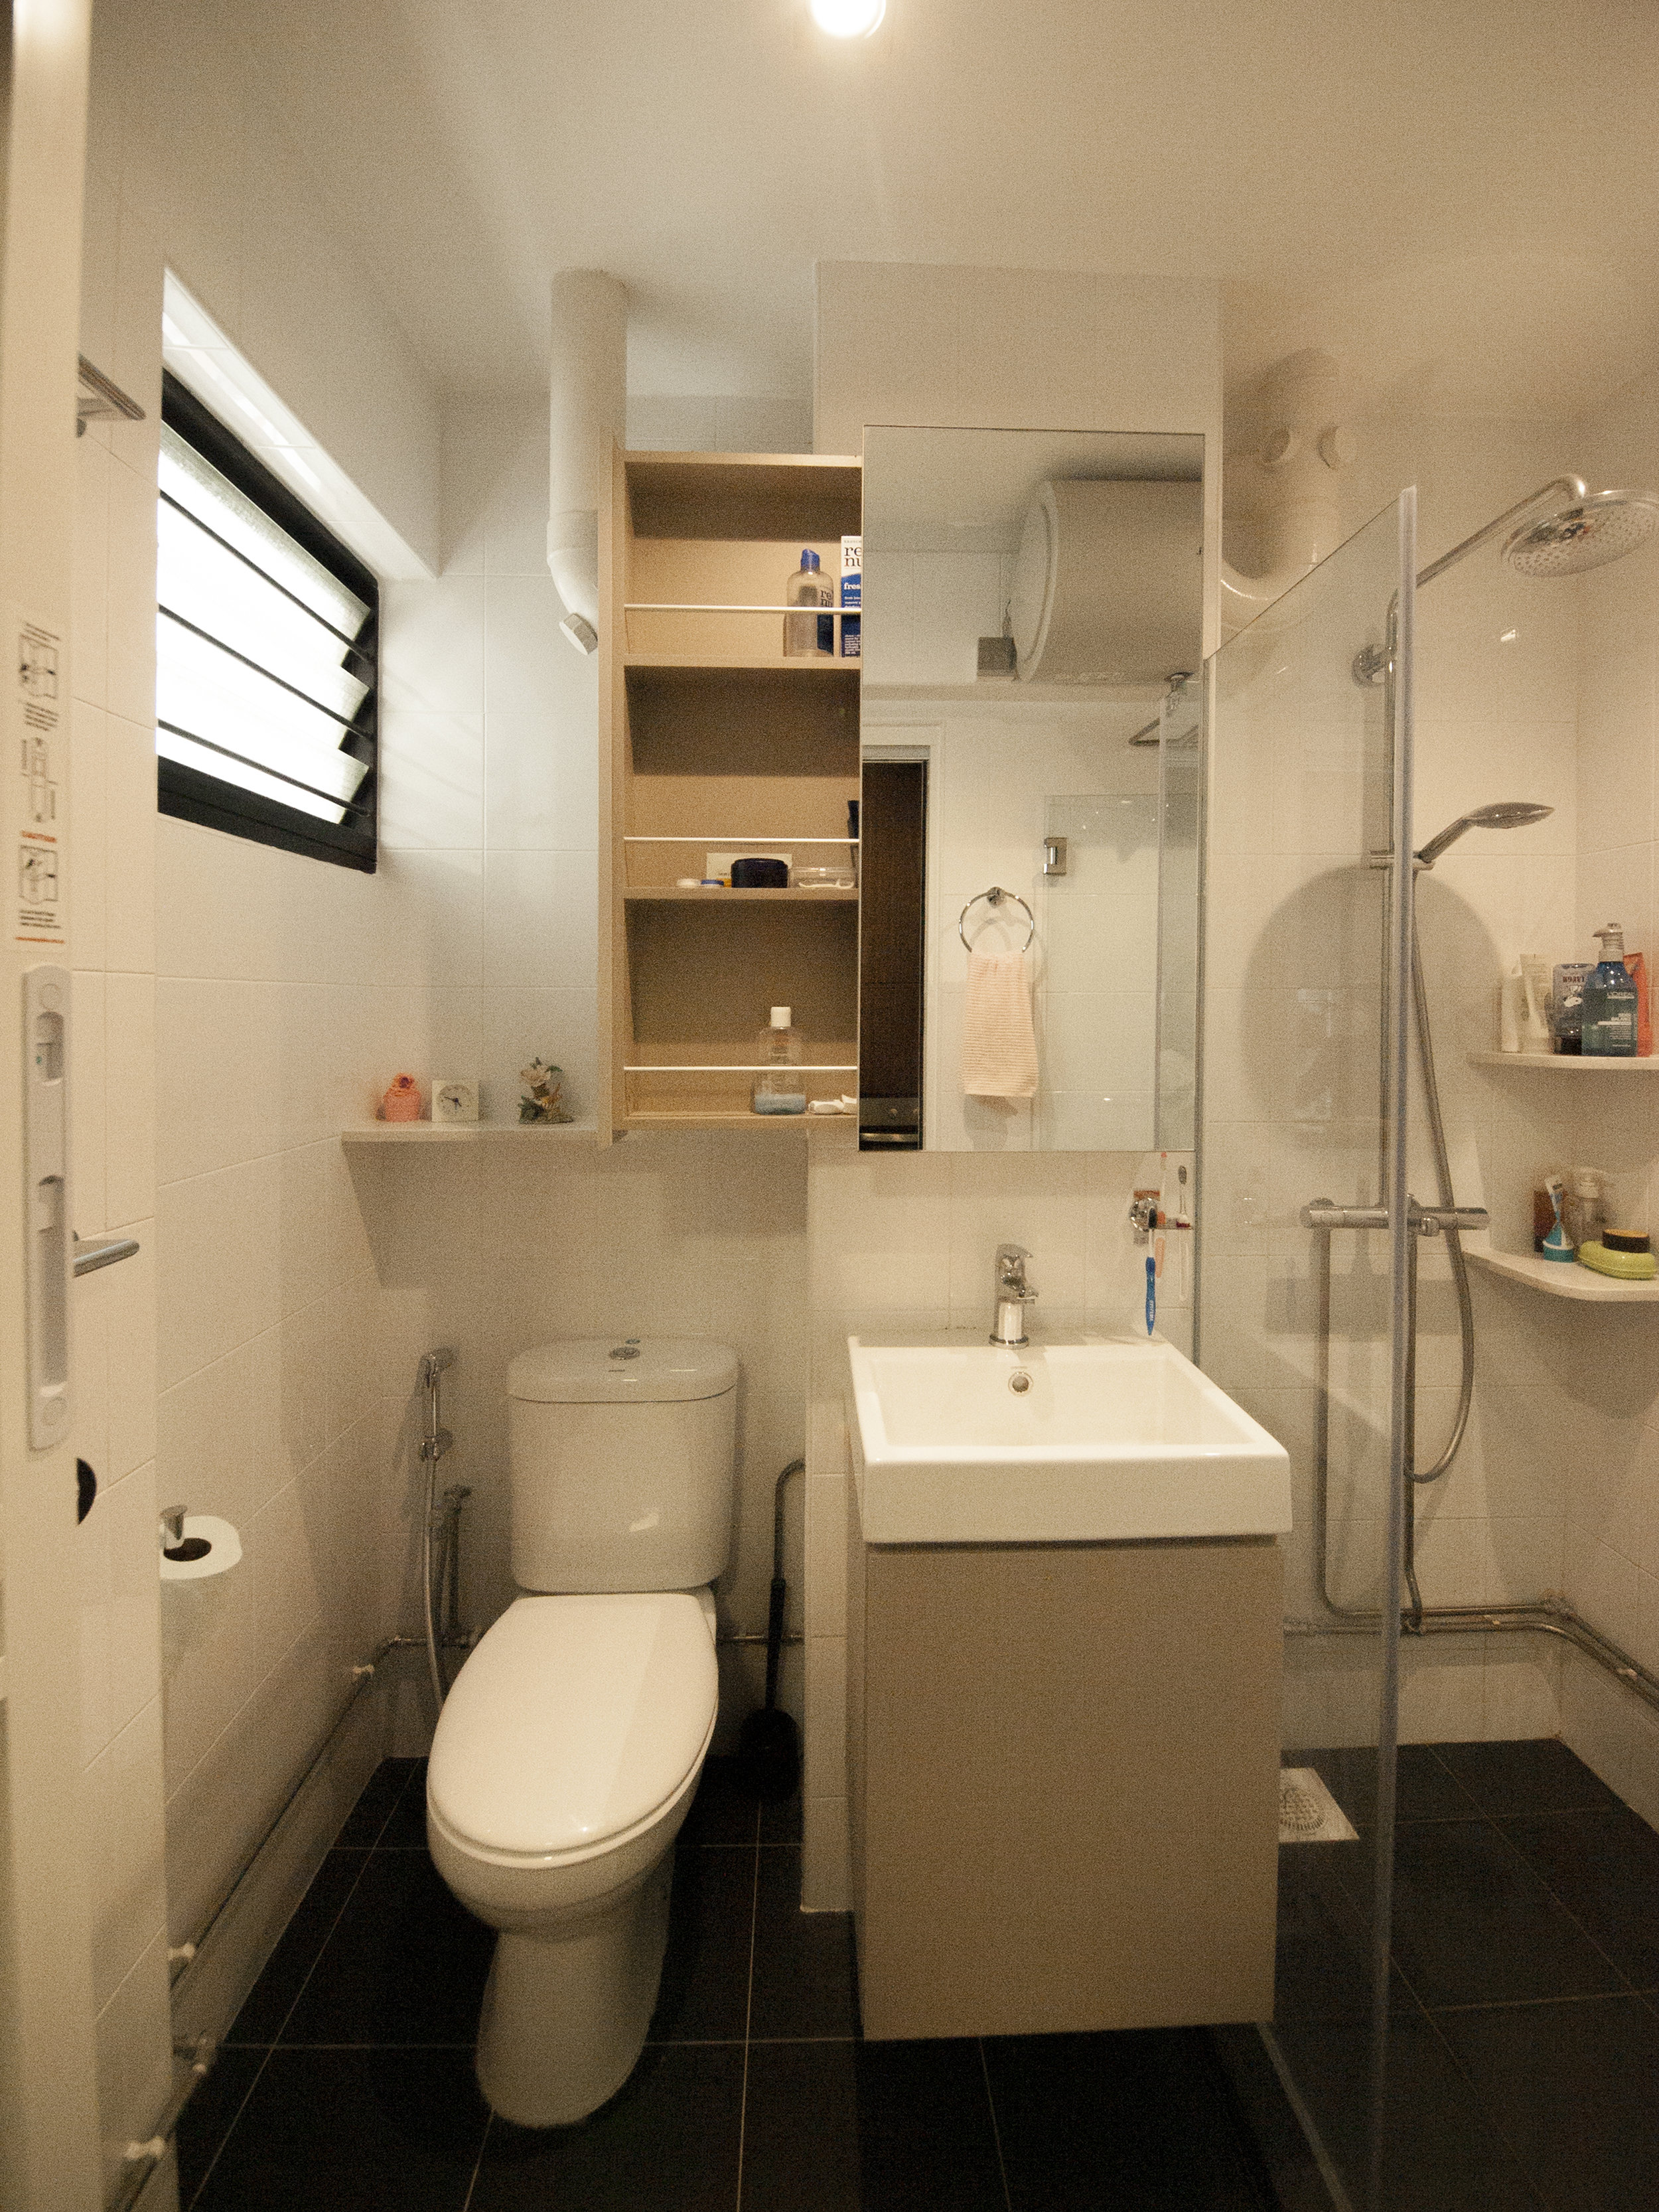 Concealed the floor to ceiling pipes partially to maximise the space and give a clean look. A sliding mirror cabinet allows you to use the mirror while accessing your bathroom essentials!